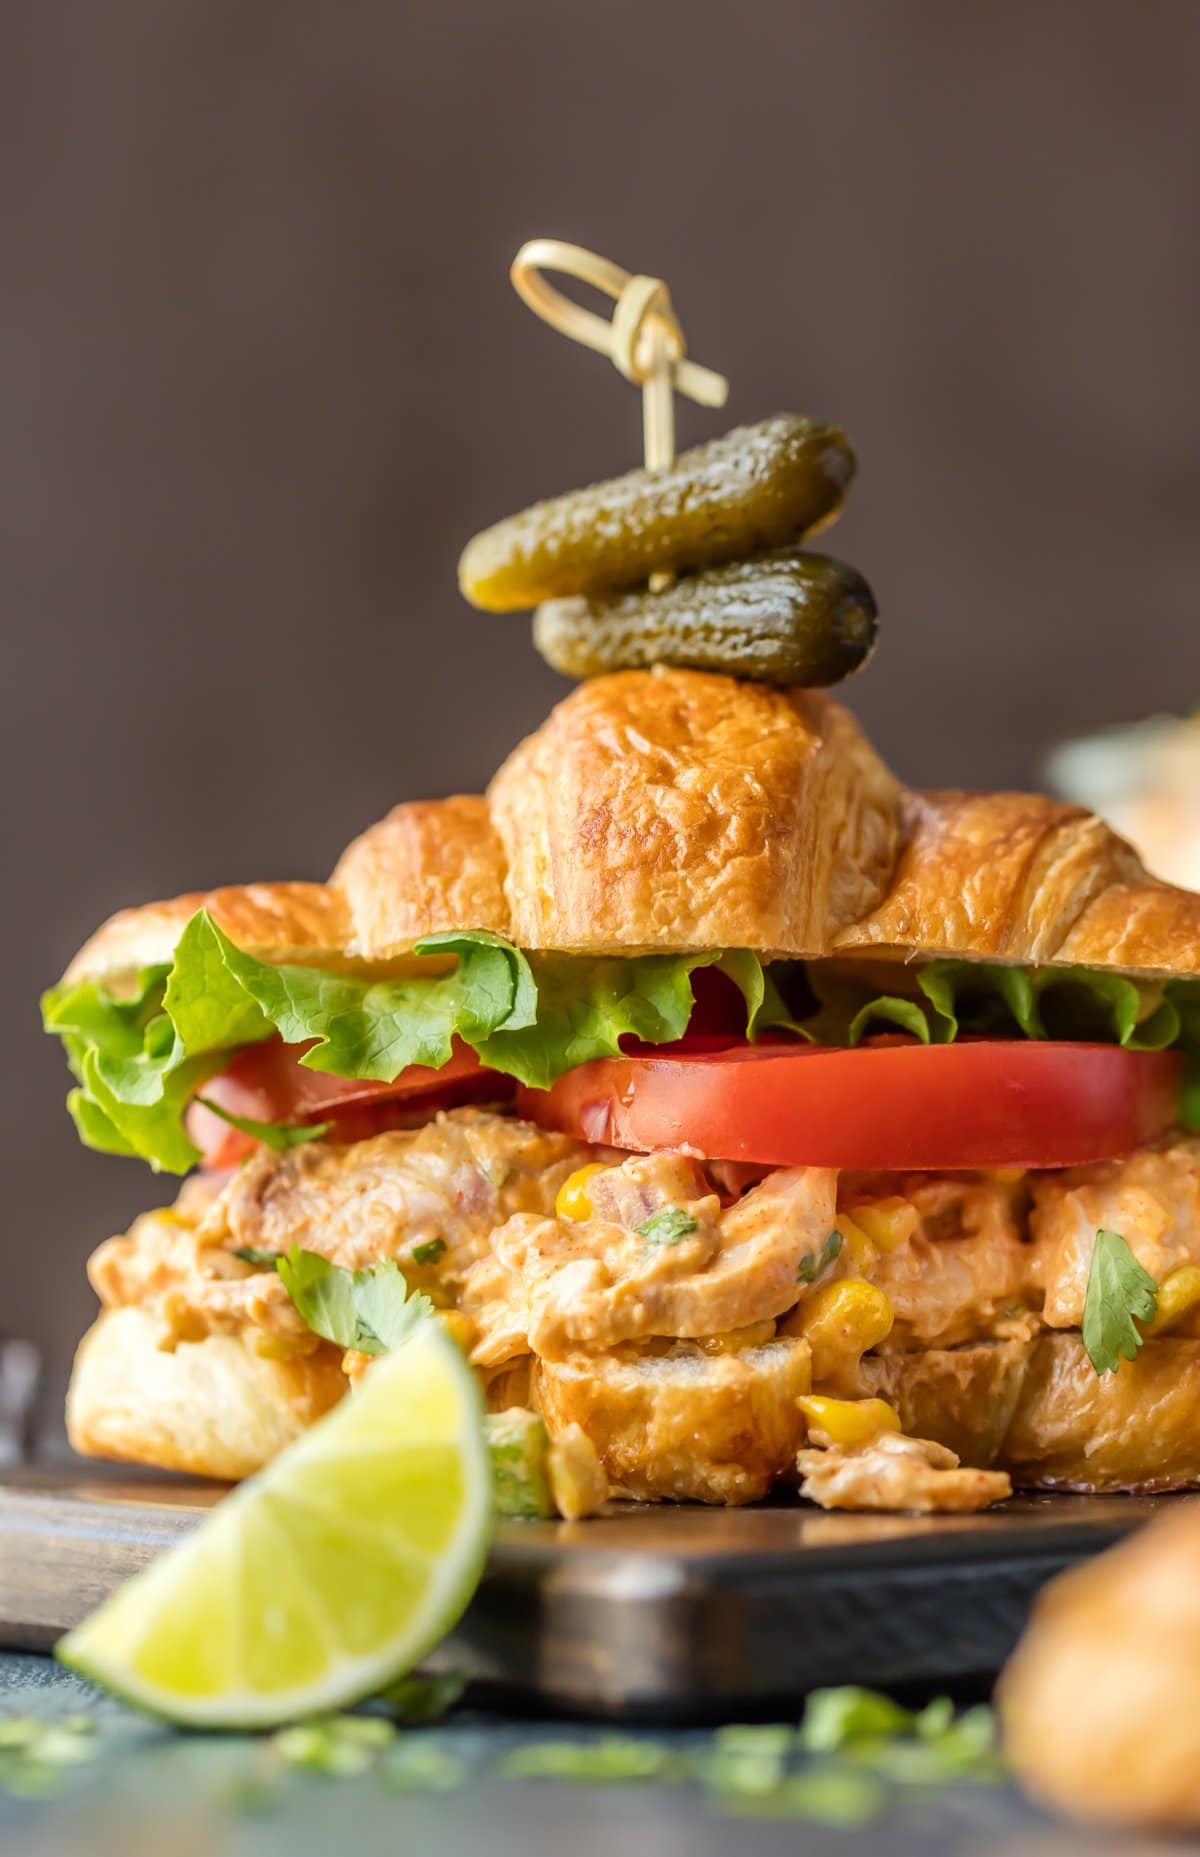 Make lunch spectacular with MEXICAN CHICKEN SALAD SANDWICHES! This easy twist on a classic is sure to please everyone at the table. Chicken salad loaded with taco seasoning, corn, peppers, and enchilada sauce. SO GOOD!